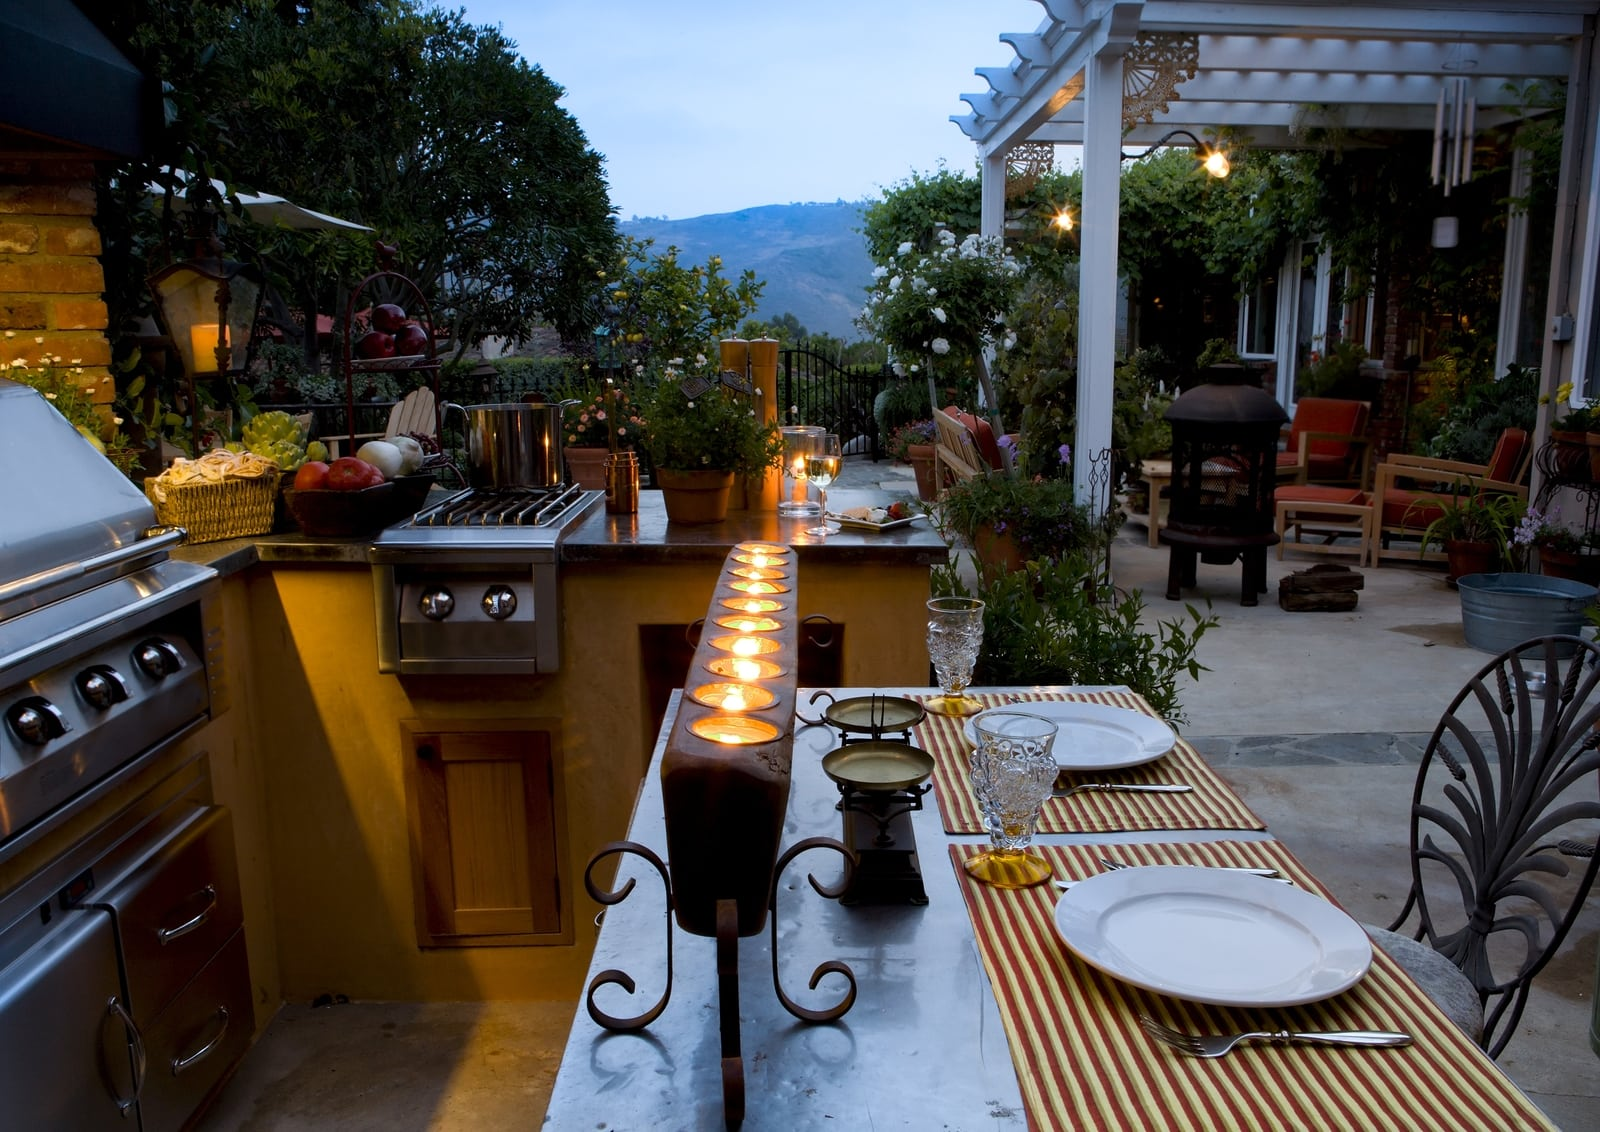 Outdoor lifestyles living and entertaining outdoors on a beautiful night